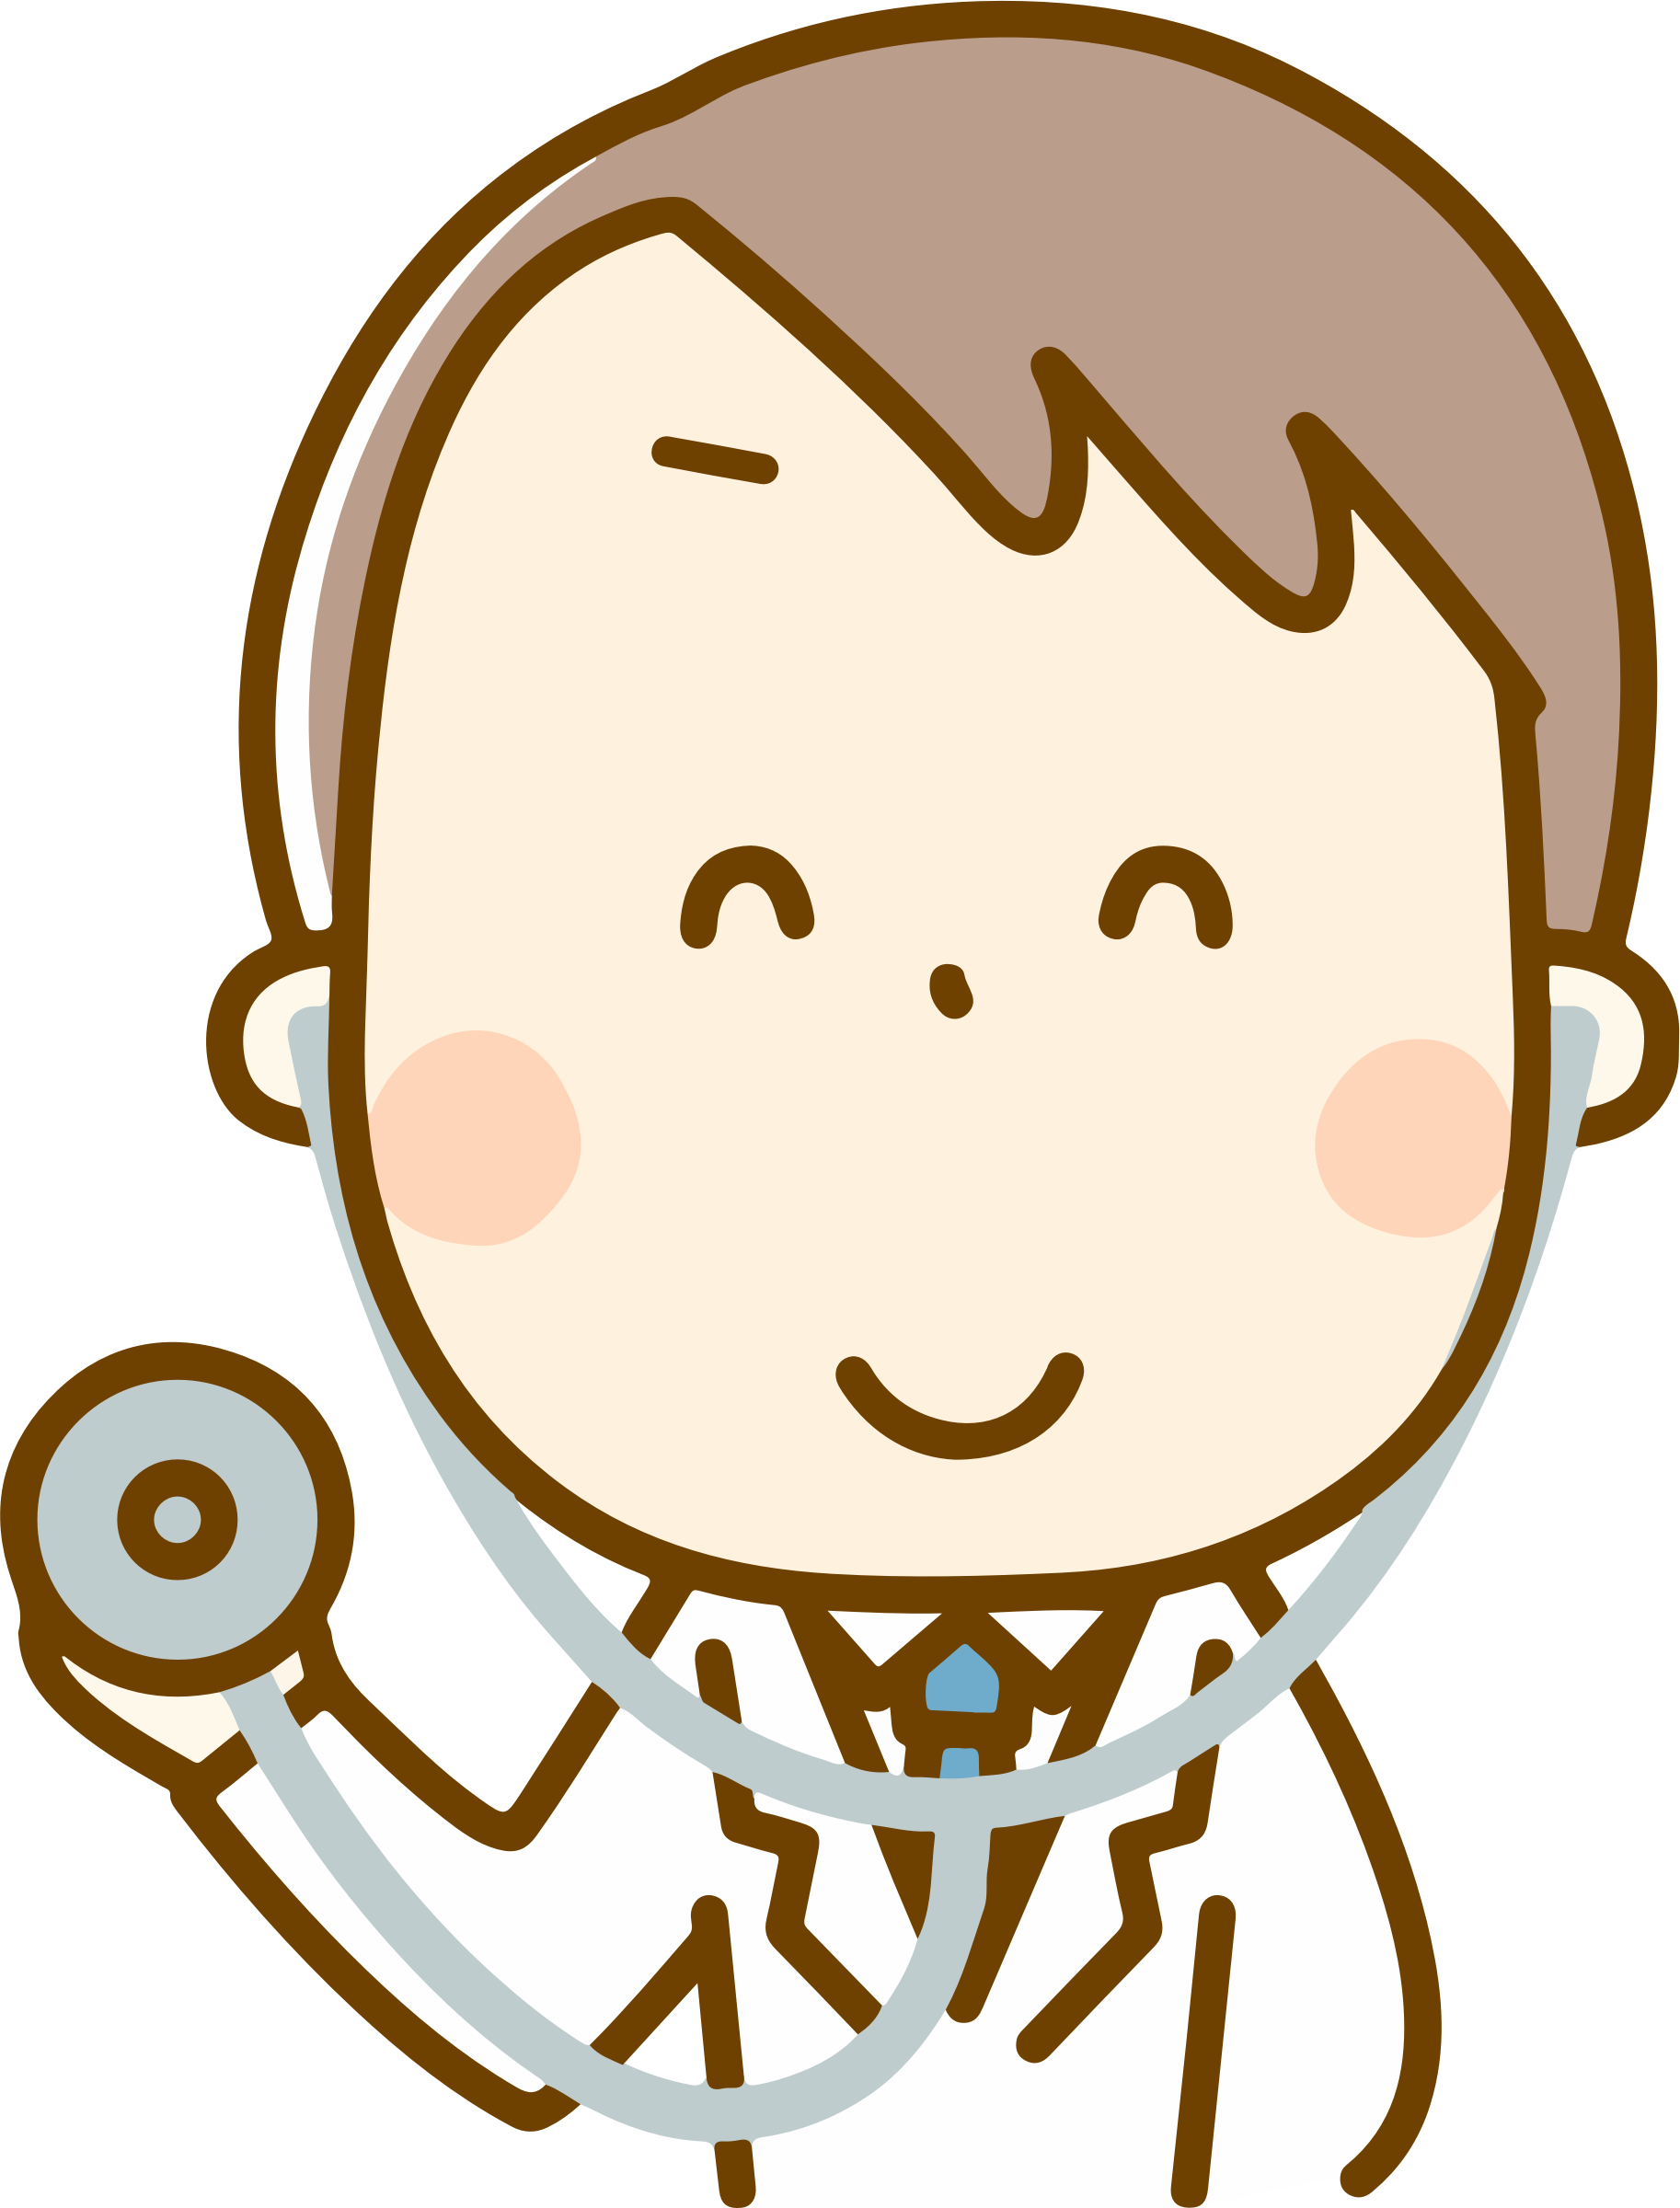 Happy clipart doctor. Big image png